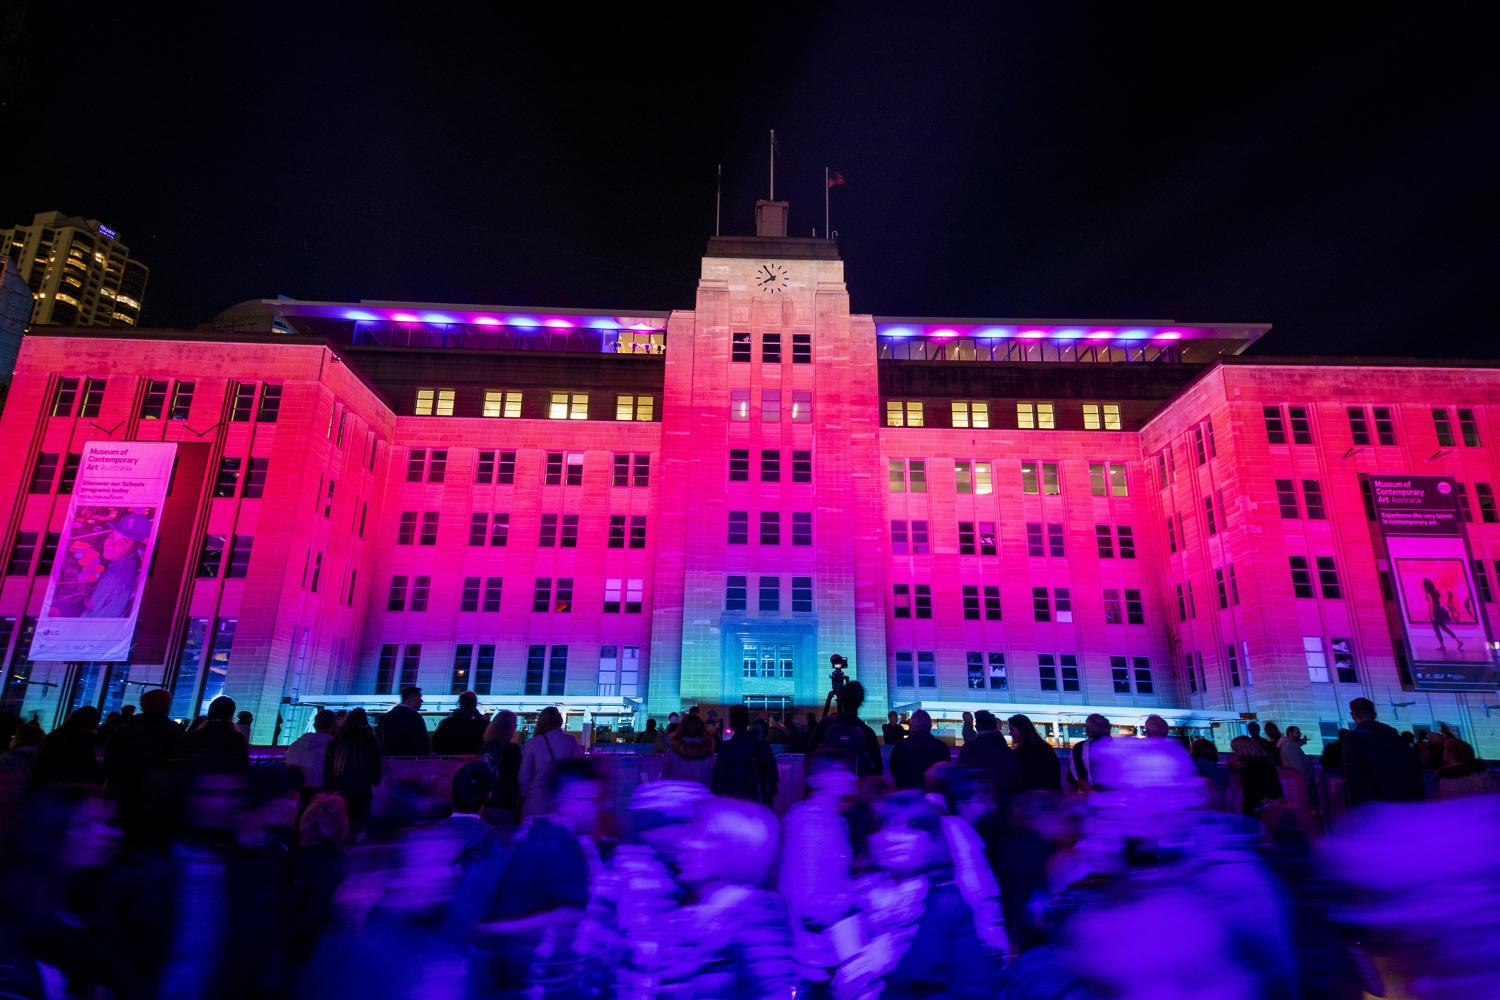 Crowds enjoying the Virtual Vibration light projection on the Museum of Contemporary Art Australia, The Rocks during Vivid Sydney 2018